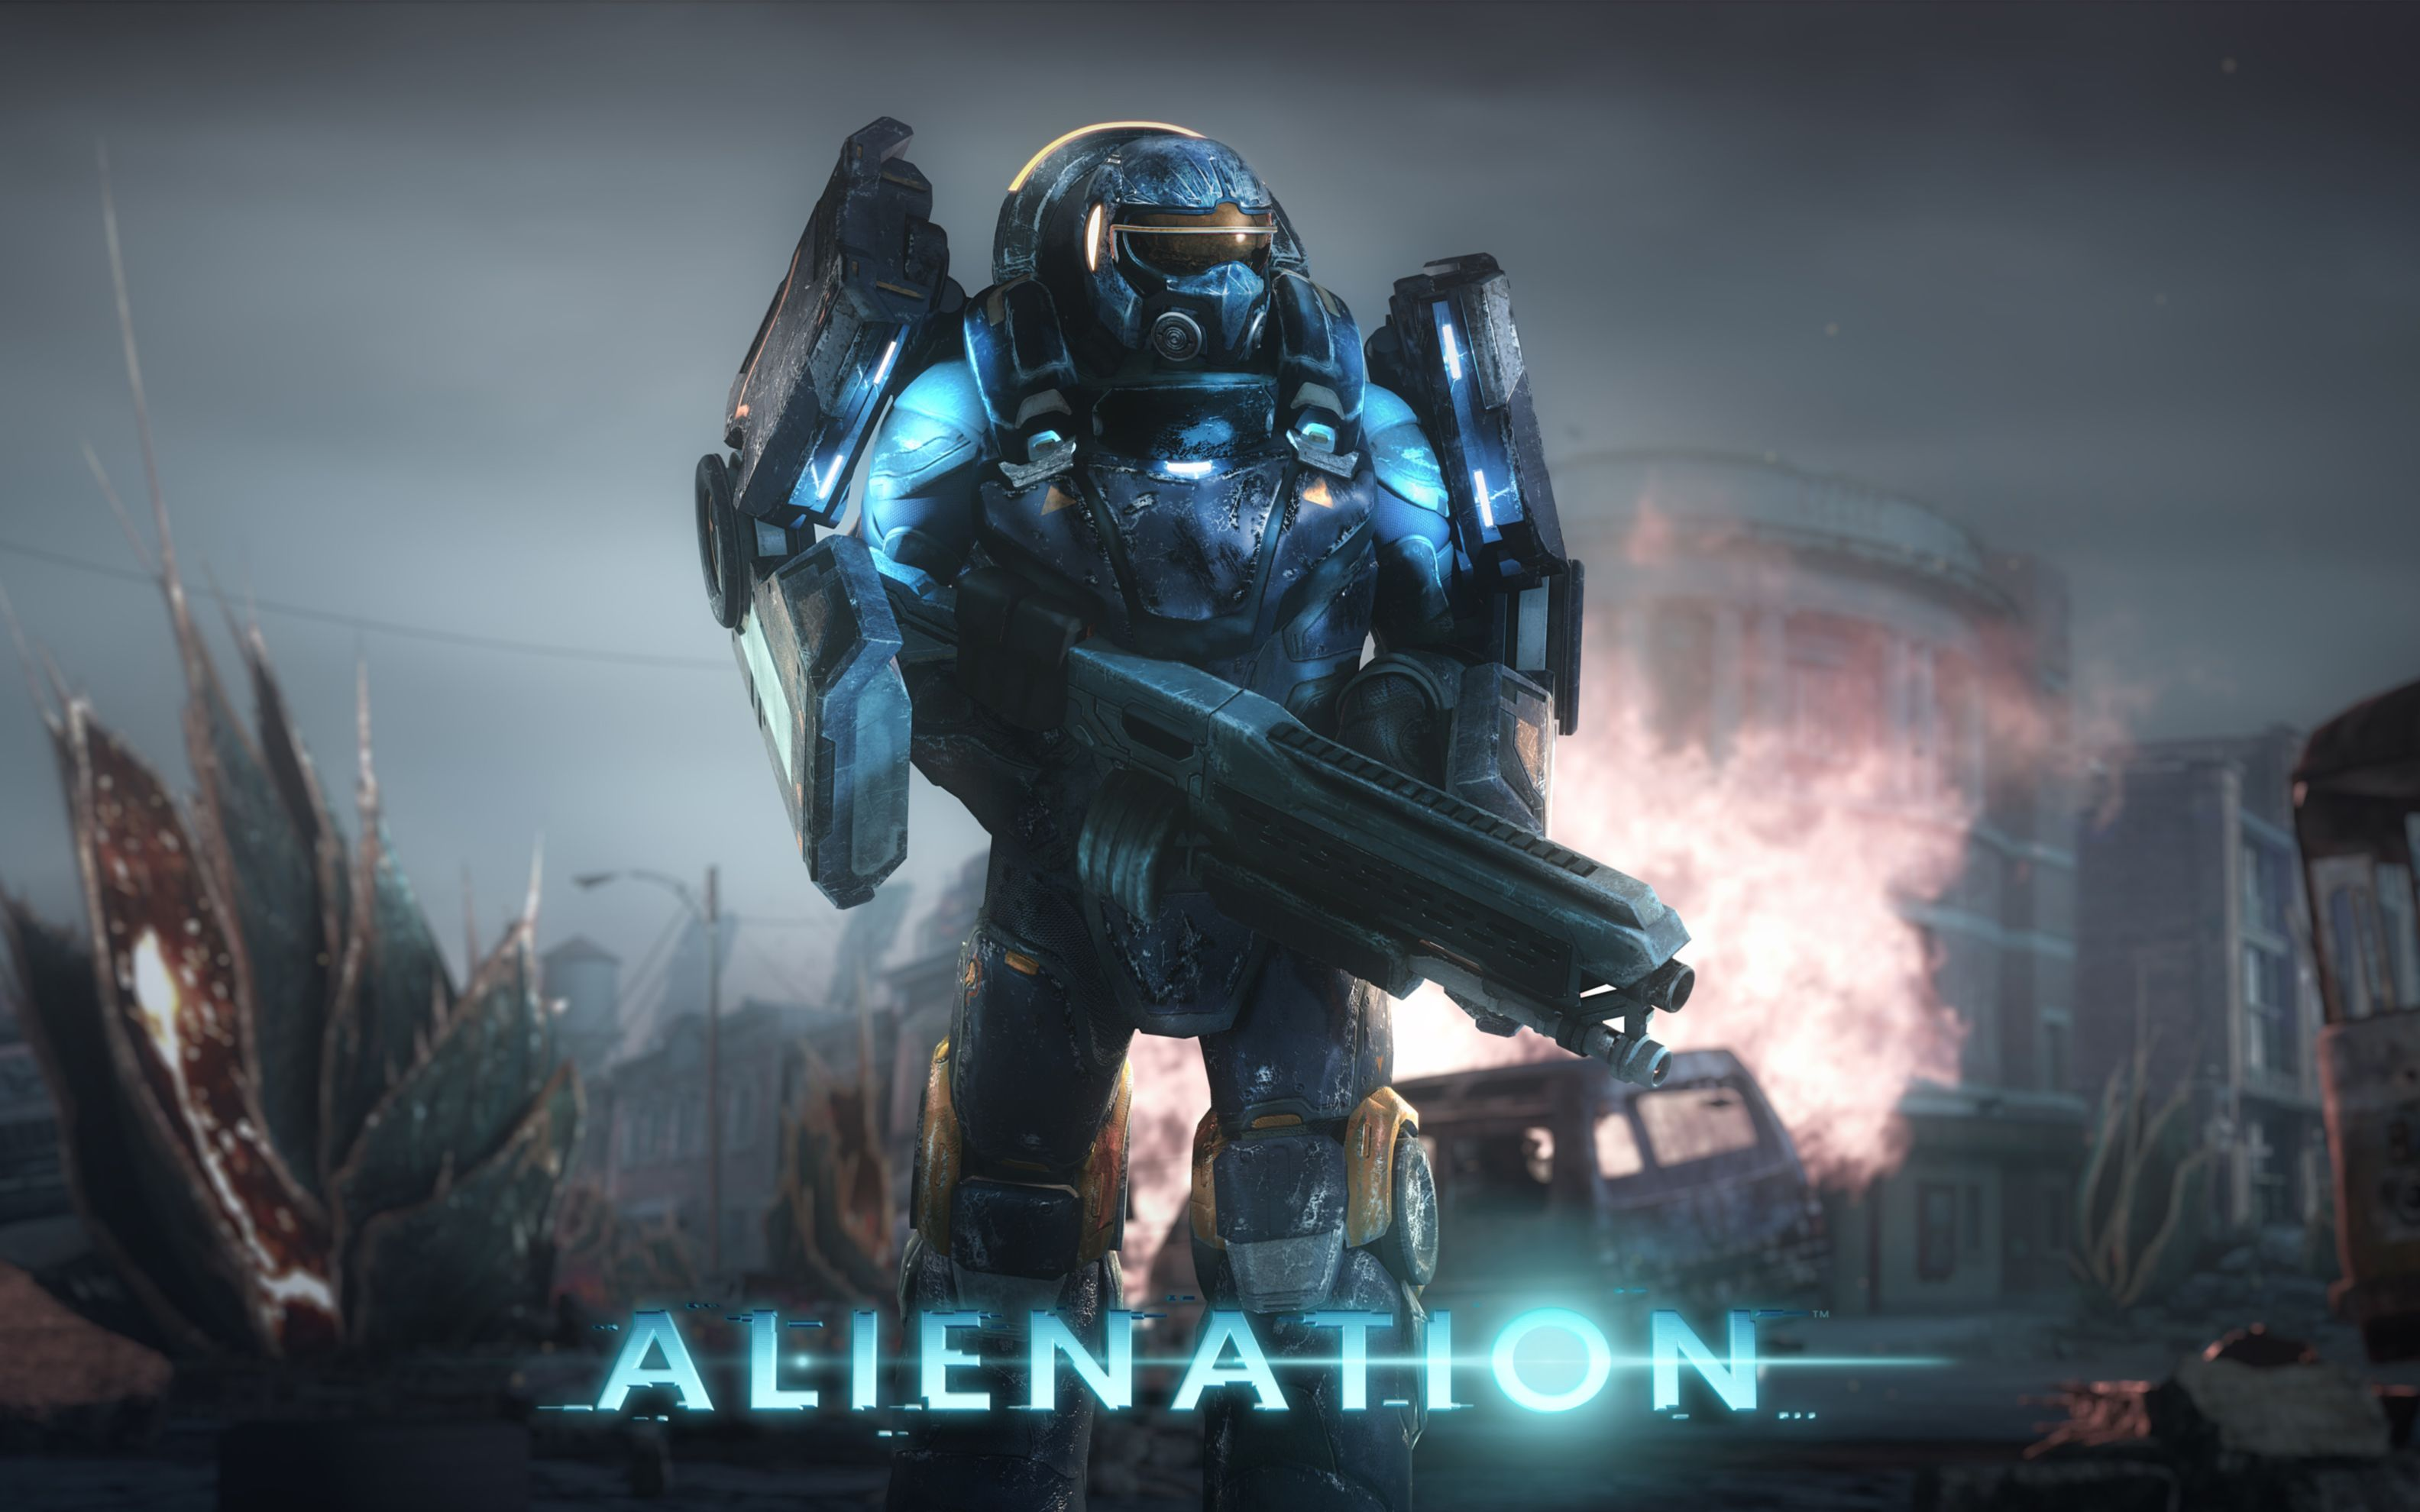 Download free HD Alienation Ps4 Game 4k 8k Wide Wallpaper, image